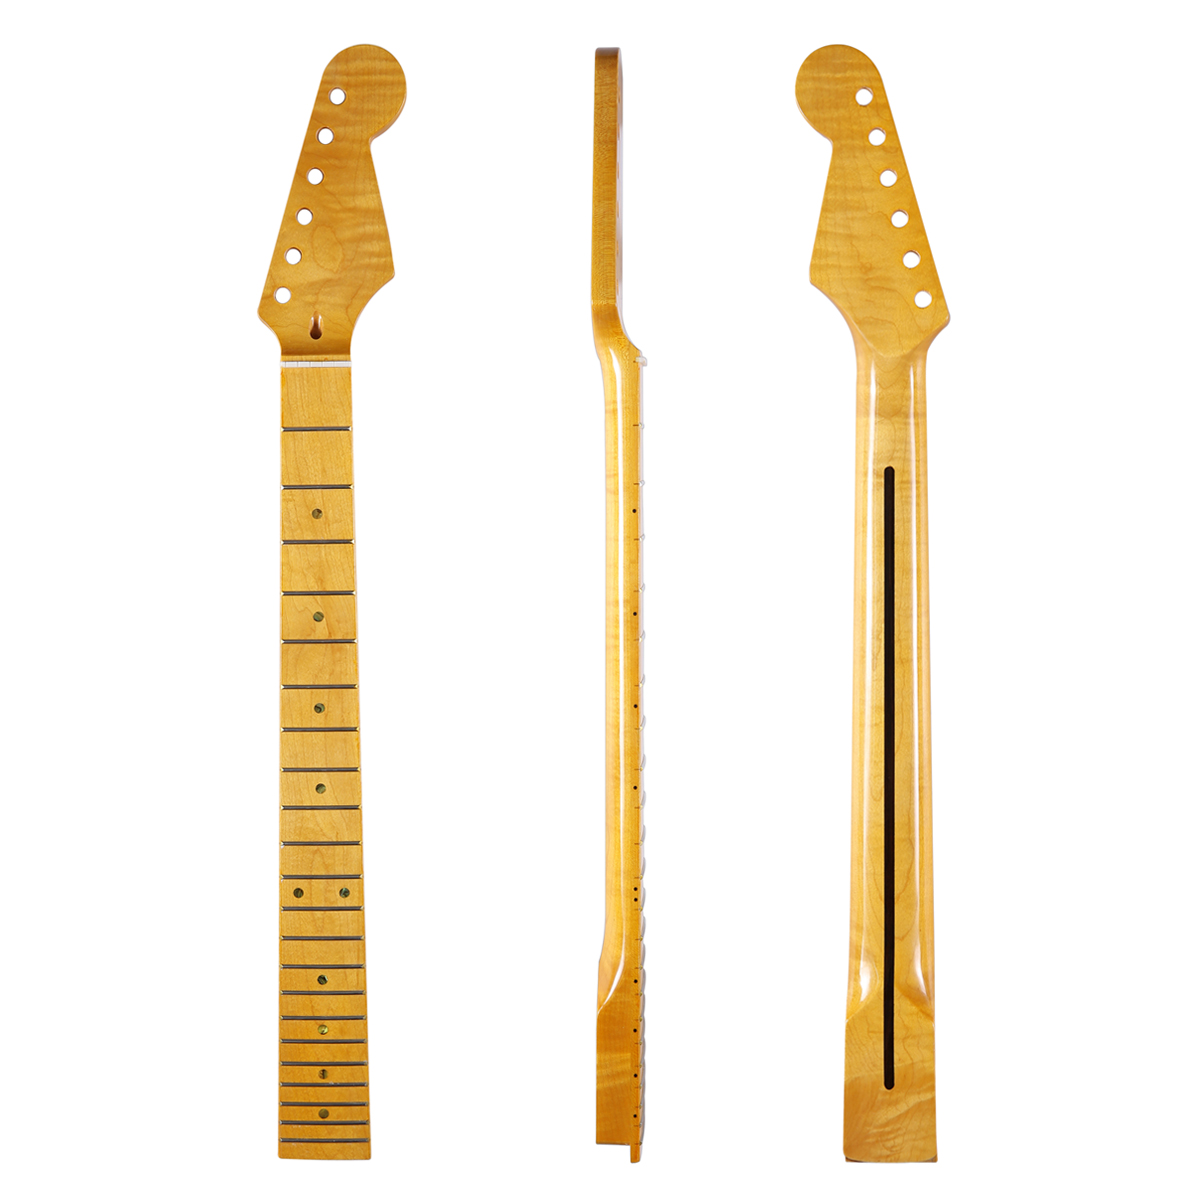 KAISH 22 Fret Glossy Canadian Highly Tiger Flame Maple Strat Guitar Neck with Abalone Shell Inlay Bone Nut for StratocasterKAISH 22 Fret Glossy Canadian Highly Tiger Flame Maple Strat Guitar Neck with Abalone Shell Inlay Bone Nut for Stratocaster